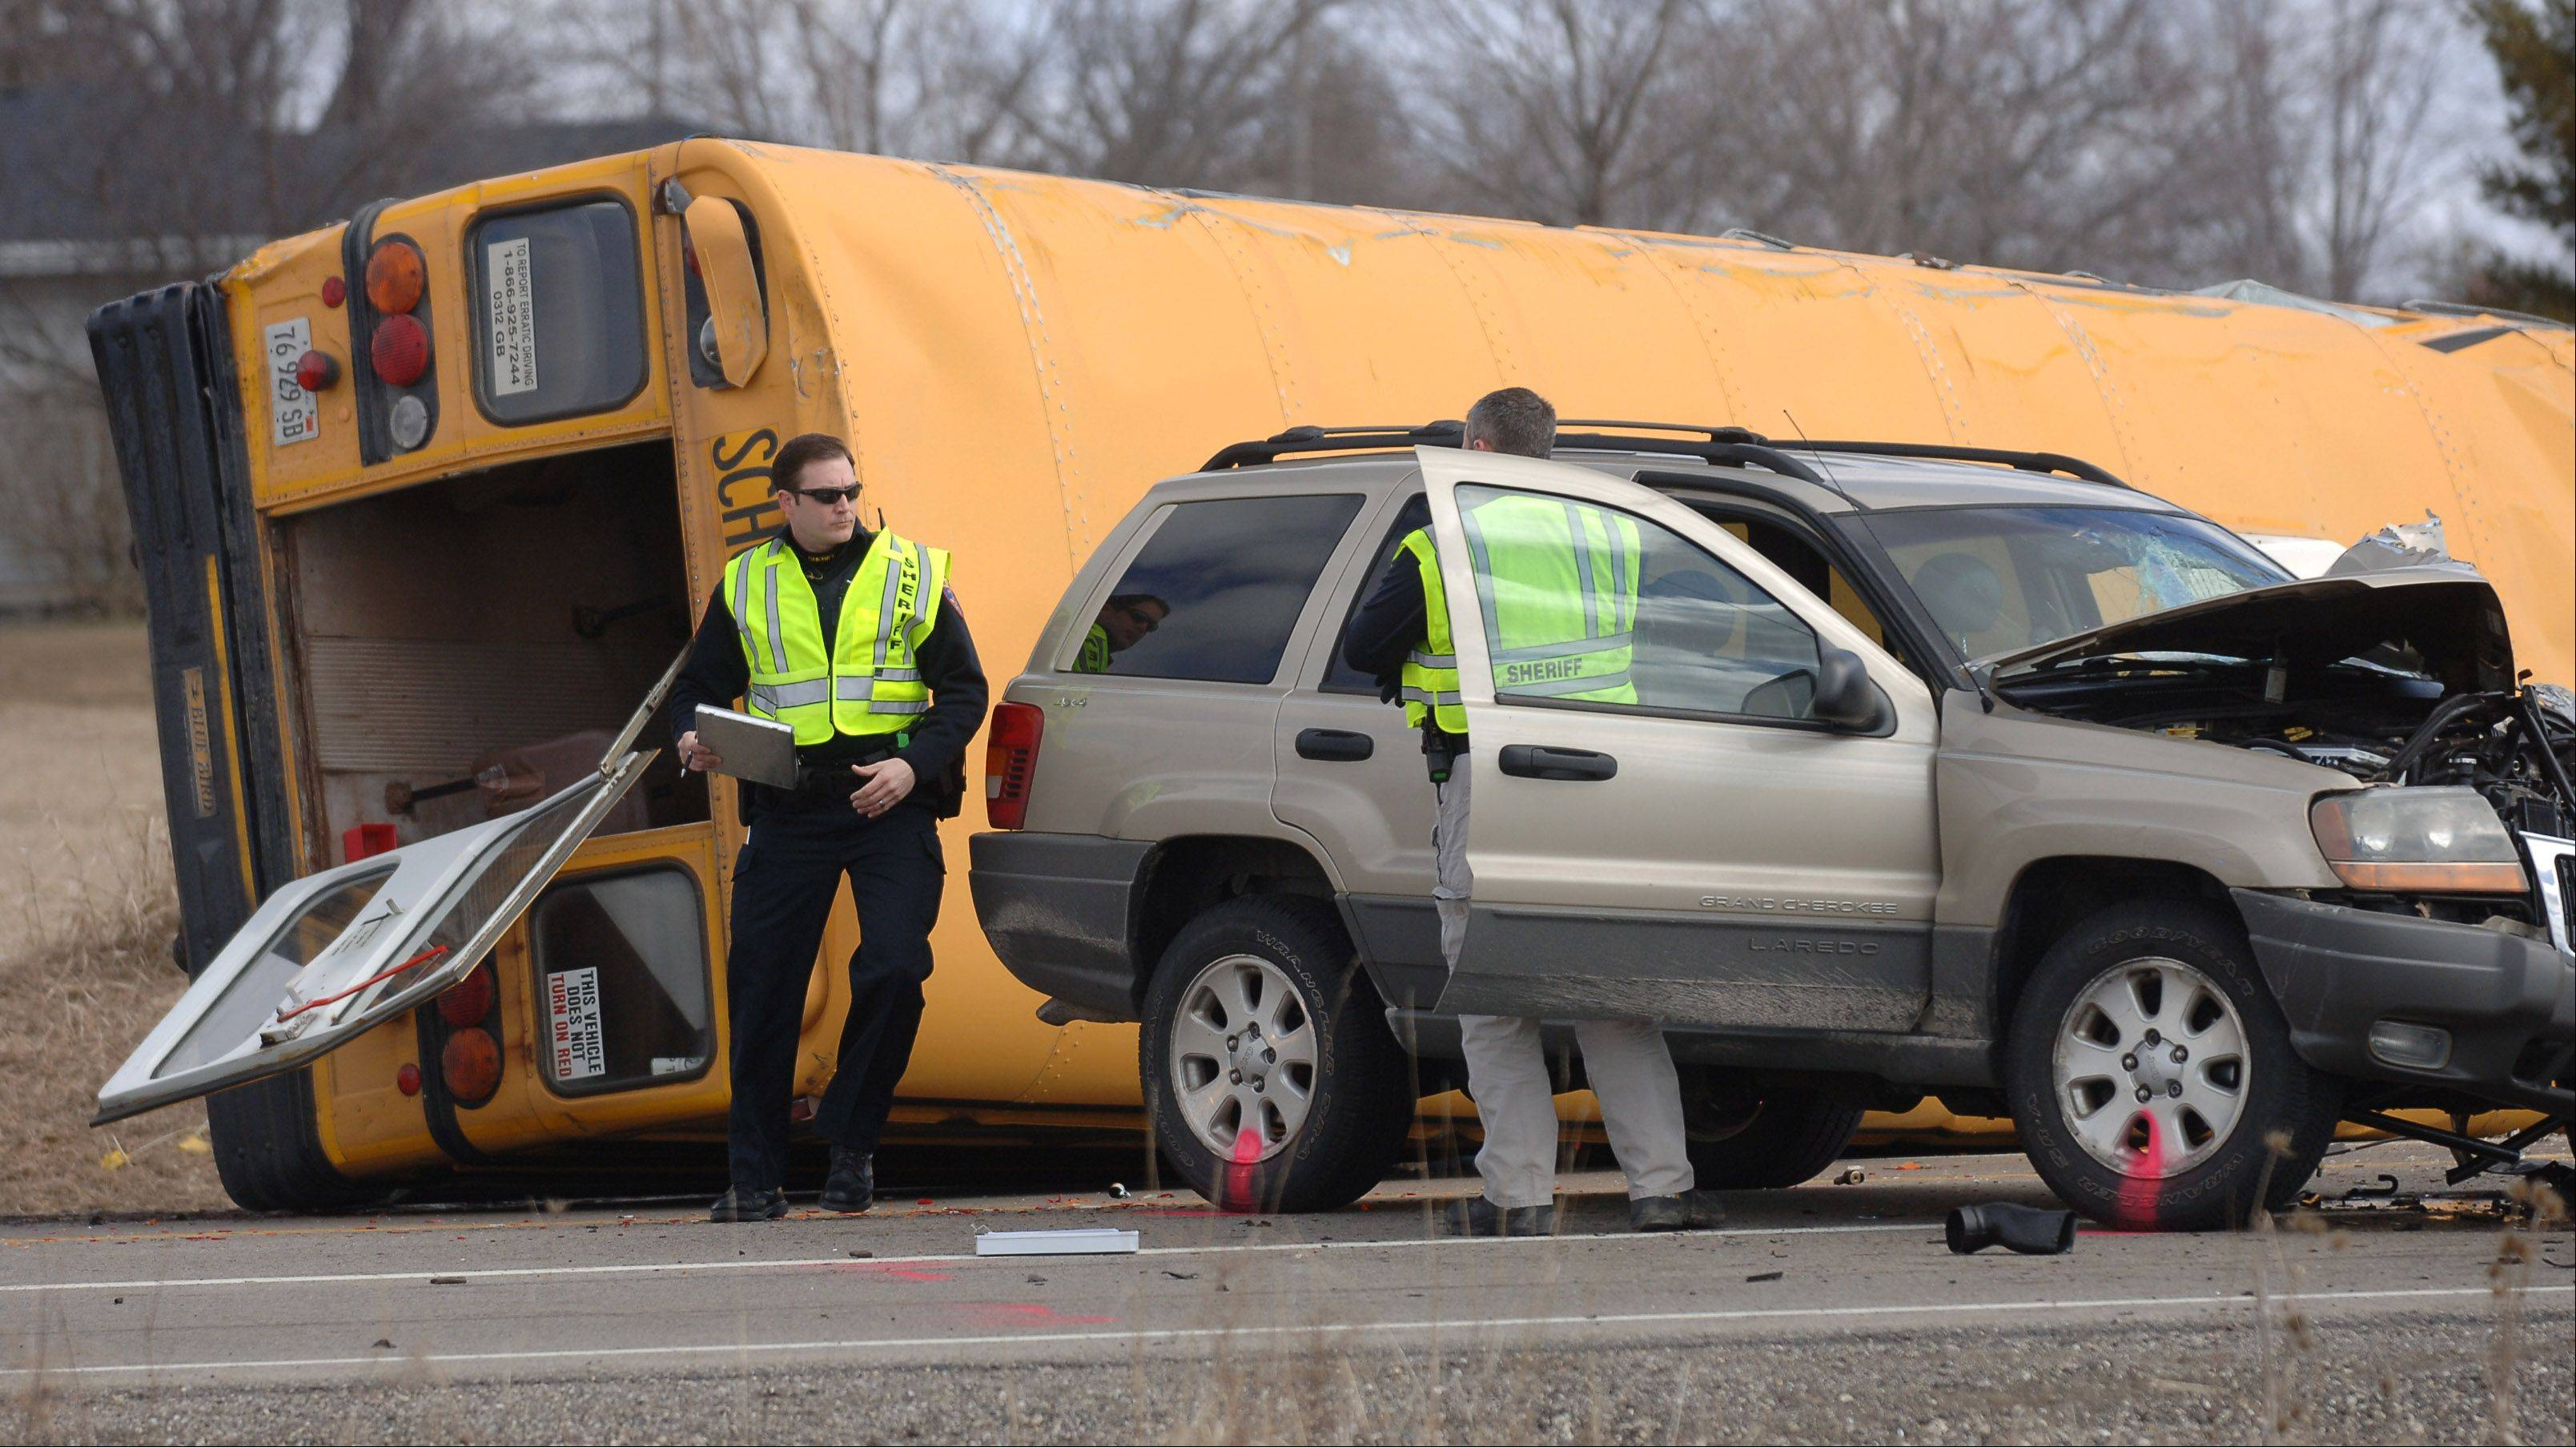 A school bus is on its side as police officials investigate the crash scene at Route 173 and N. Kilbourne Road near Wadsworth Friday morning. The bus carrying 35 students was heading to Newport Elementary School.